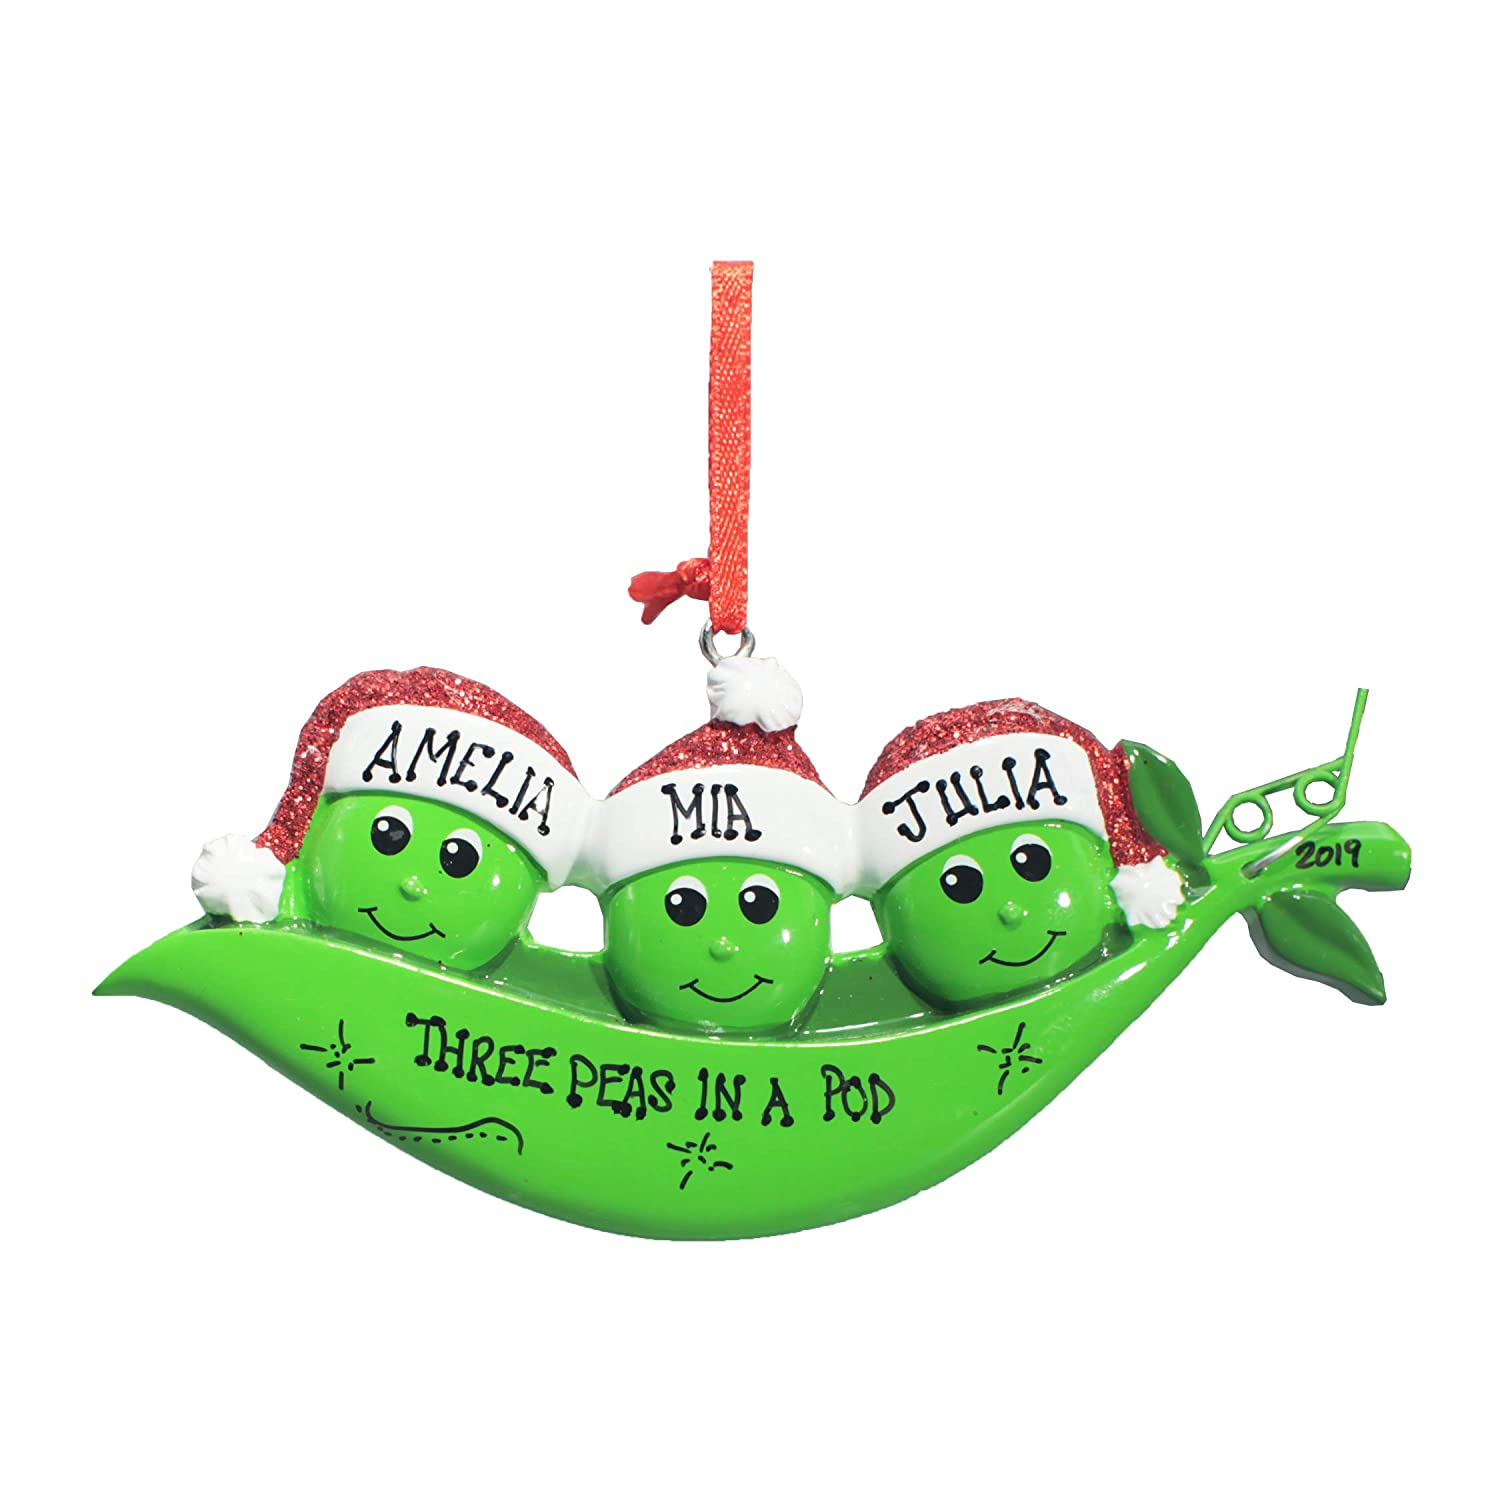 Personalized Christmas Tree Decoration Ornament 2019 – Traditional Home Décor – New Year Santa Gift - Holiday Fun w Hanging Hook - New Peapod Family of 3 - Free Customization